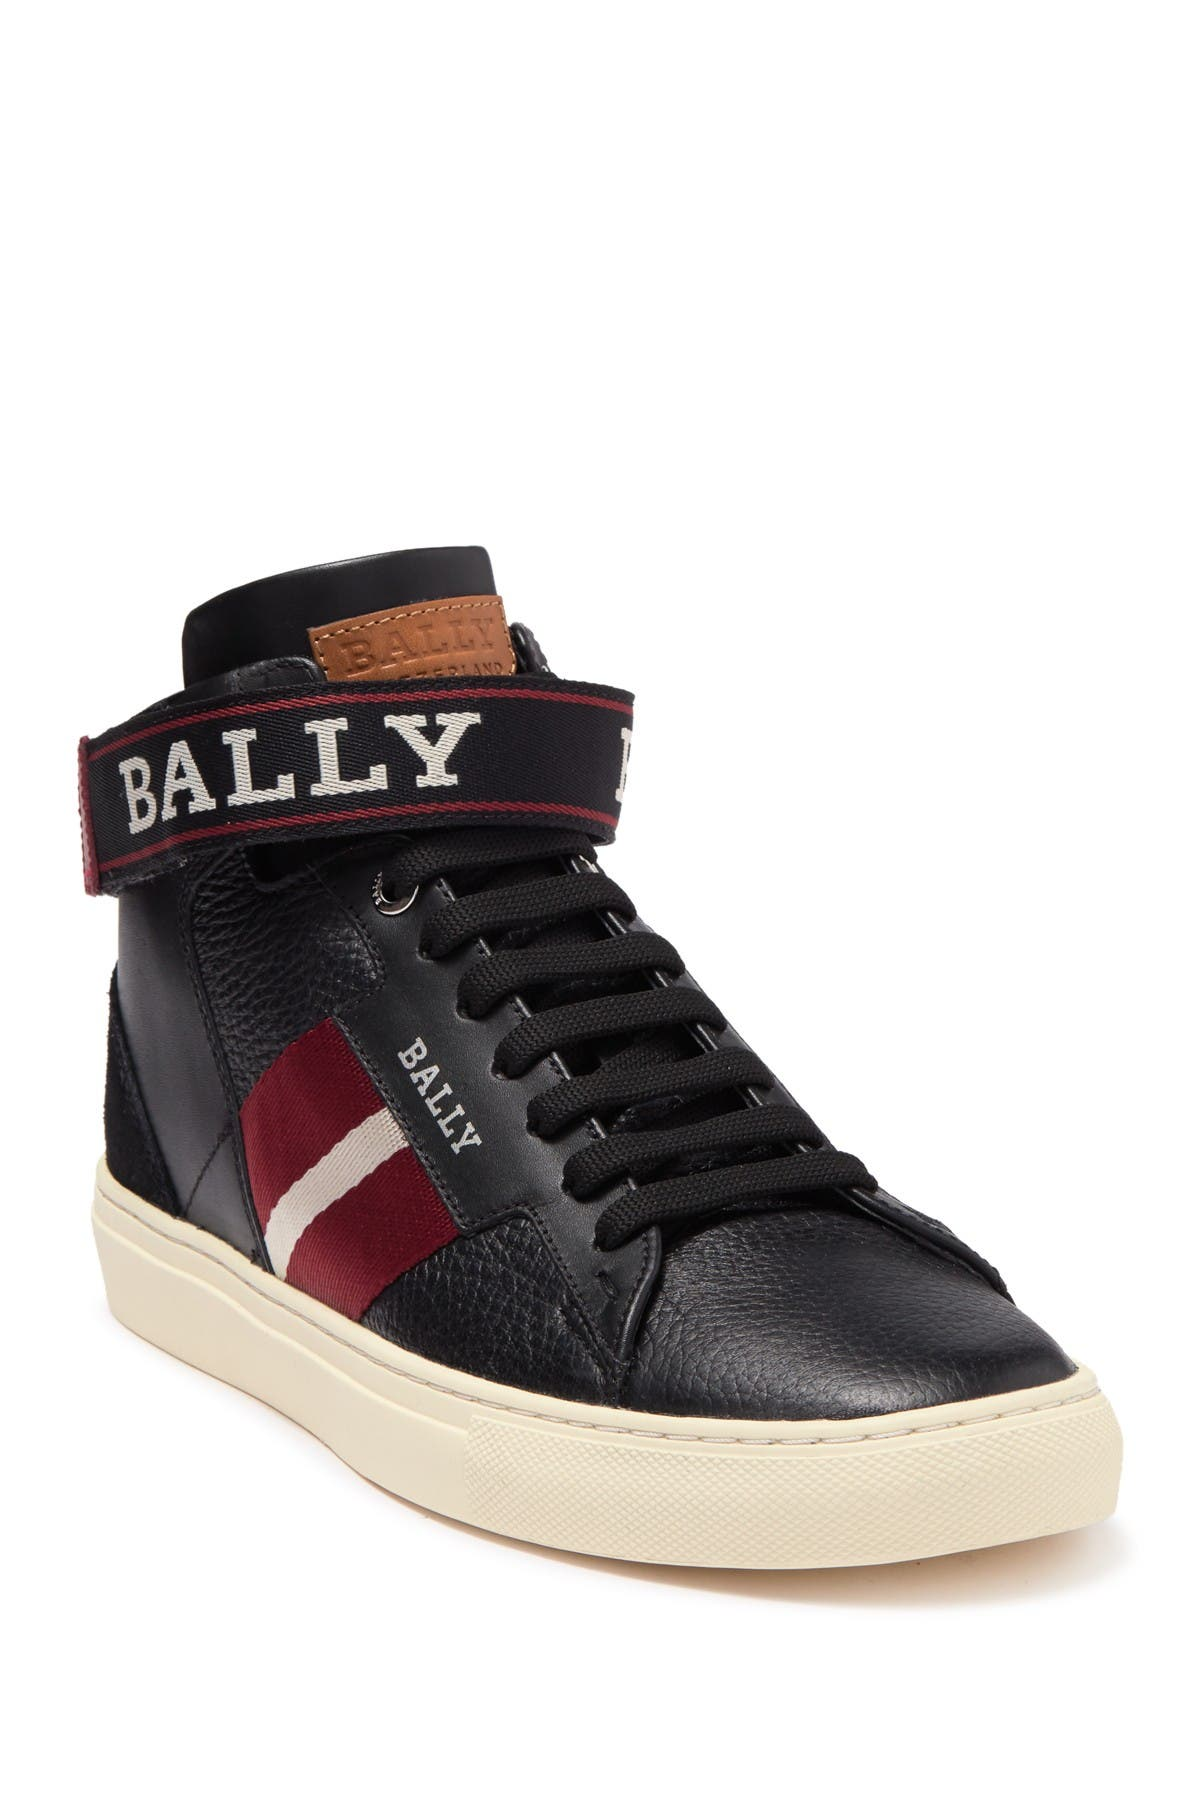 BALLY   Heros Leather High Top Sneaker